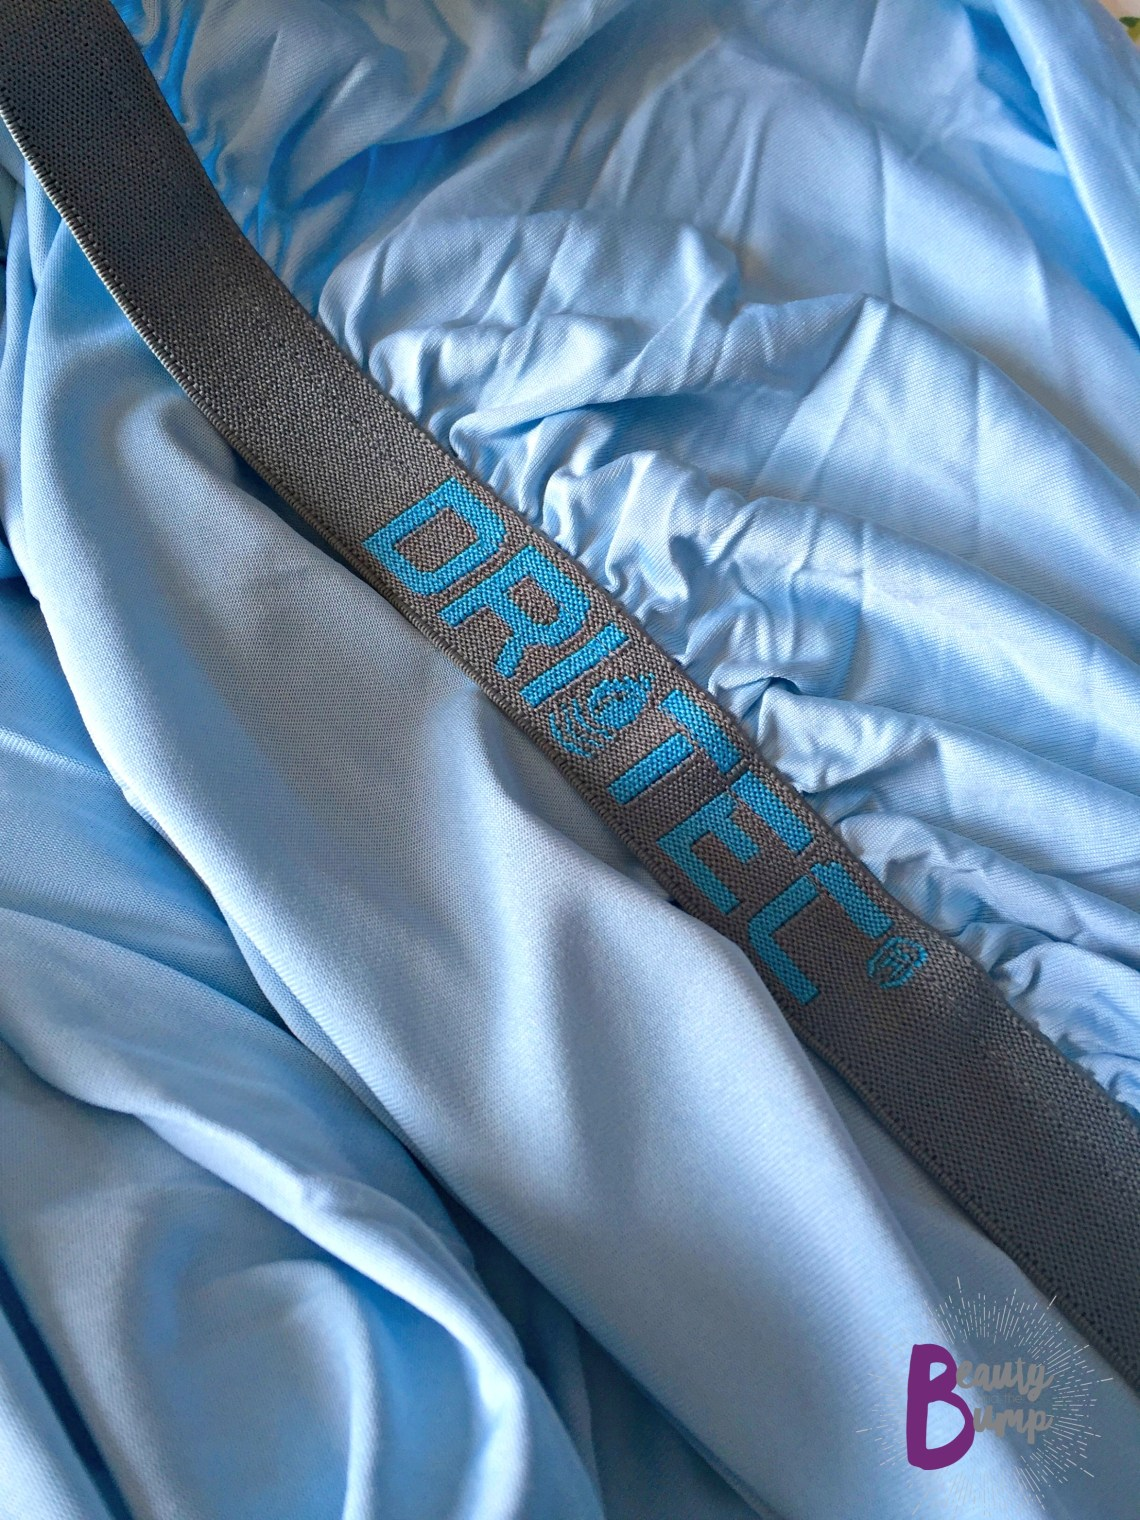 Bedgear Baby Performance Fitted Crib Sheet powered by DRI-TEC technology